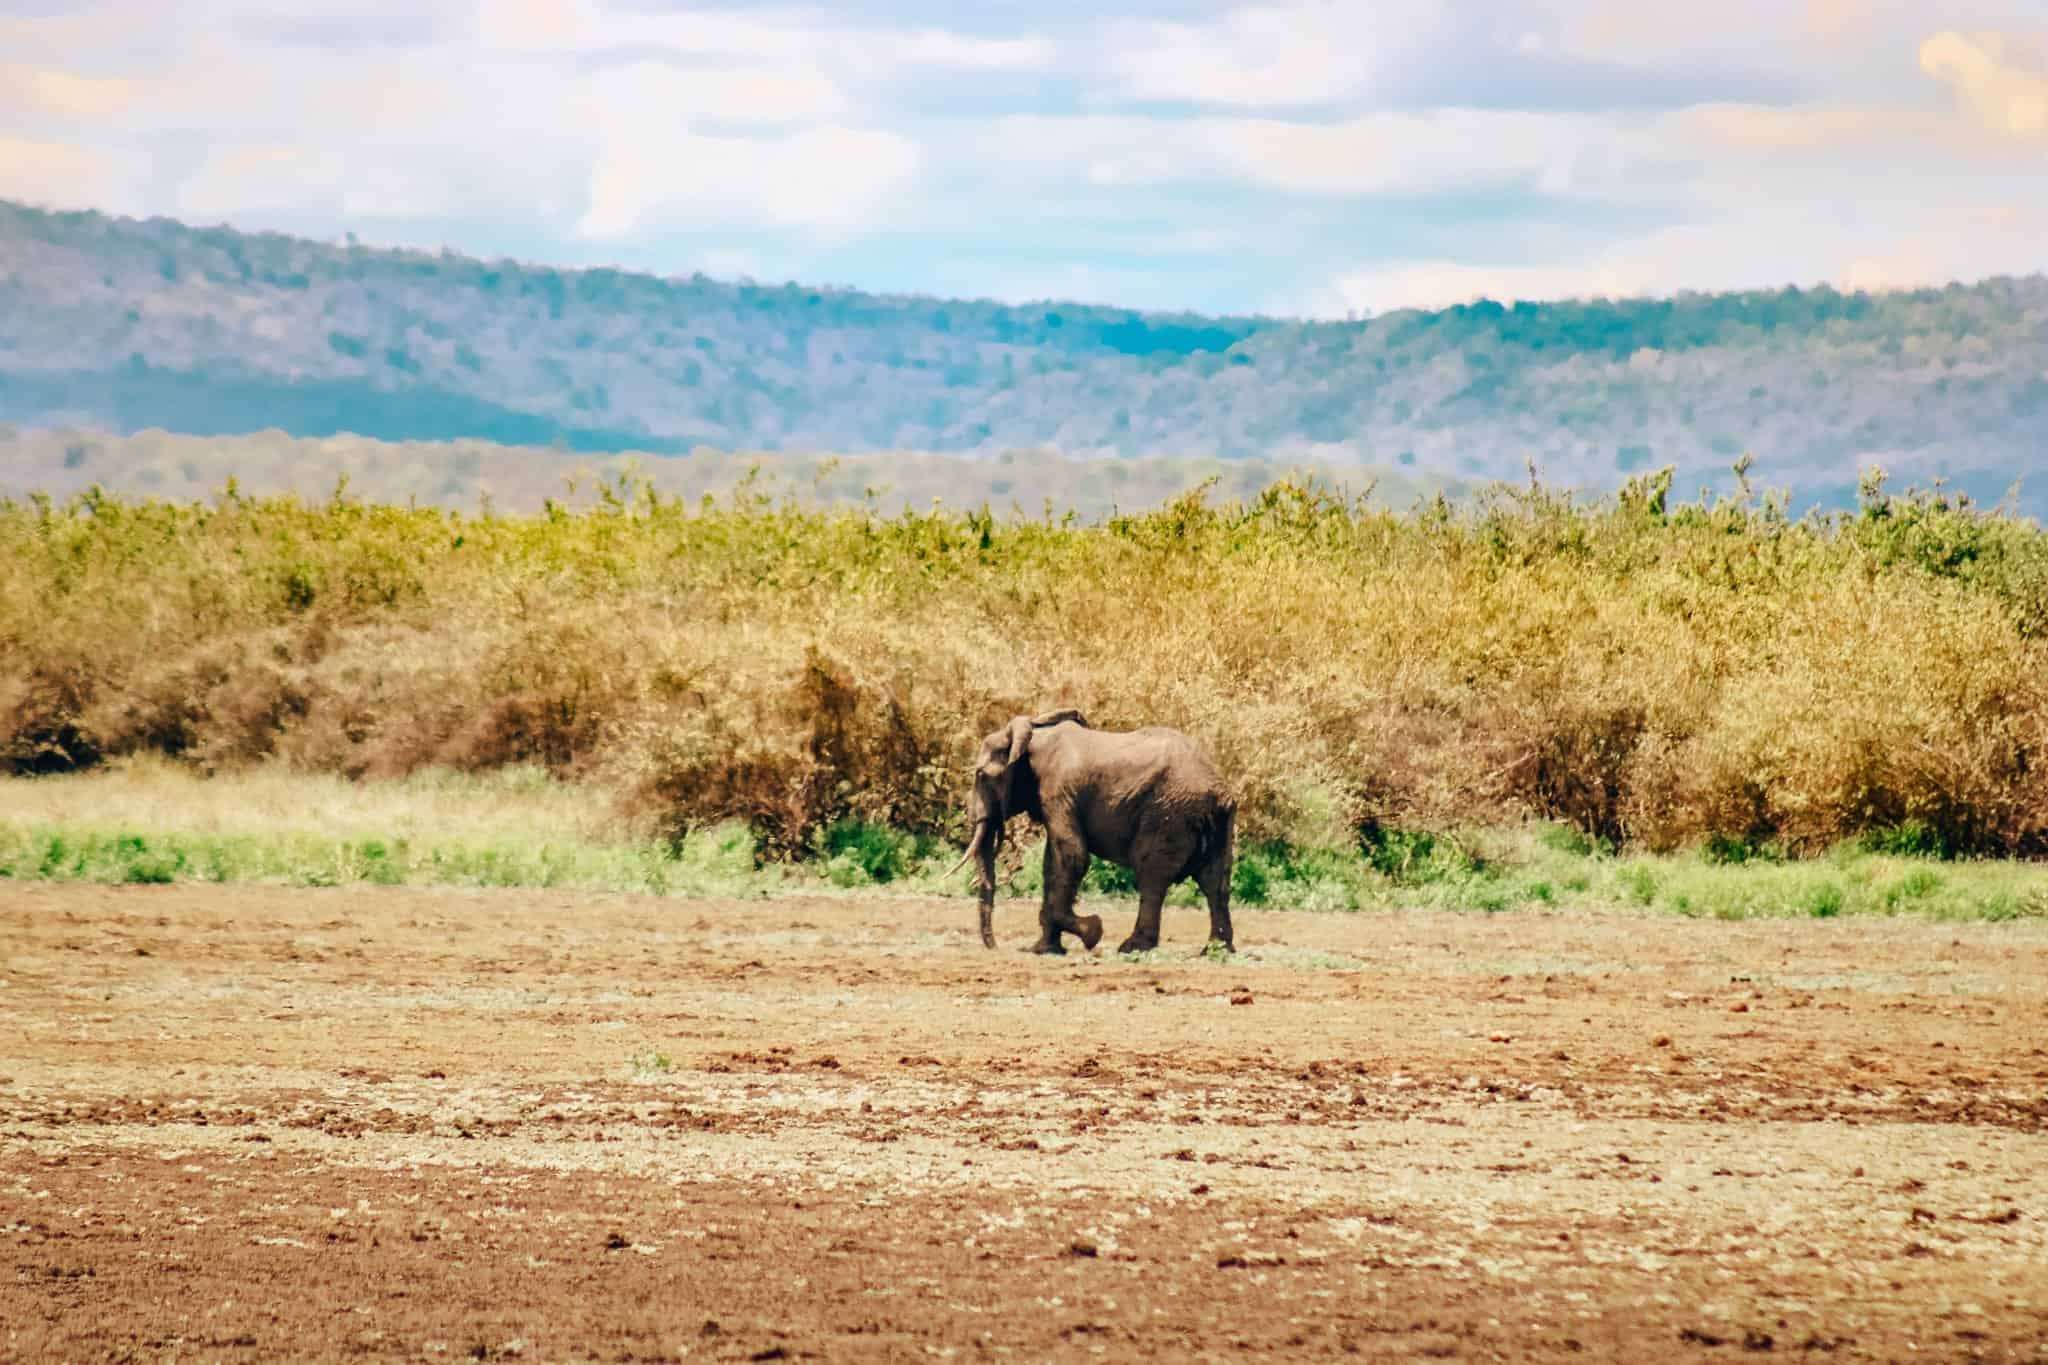 Lonely Elephant on African Safari Drive in the Selous Game Reserve